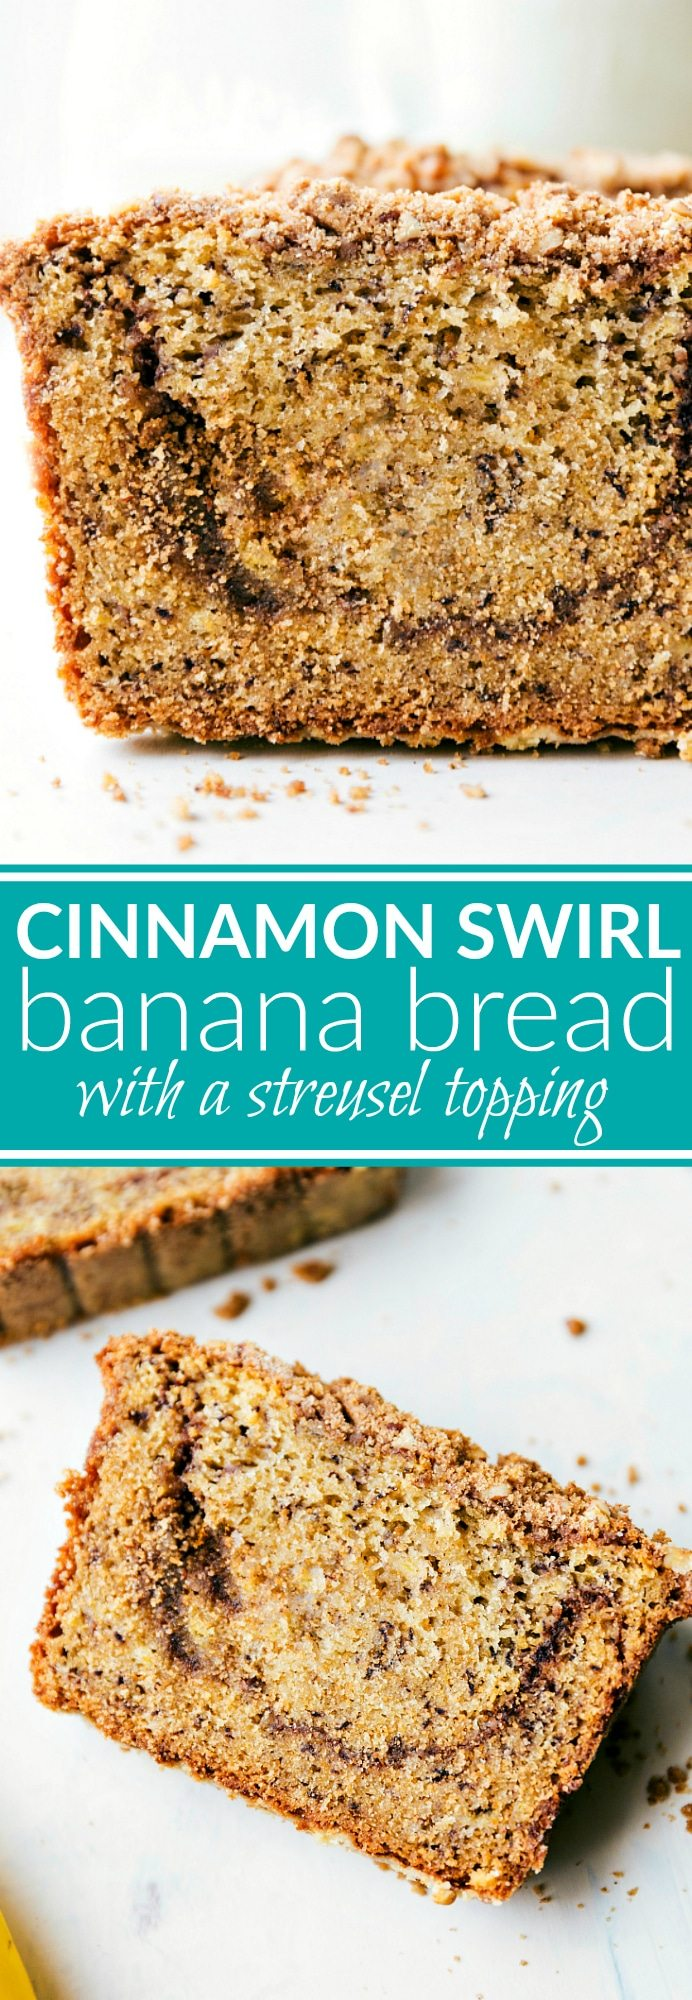 The best GREEK YOGURT Banana Bread!! A delicious and easy to make cinnamon-swirled banana bread with a sugared streusel topping. Recipe via chelseasmessyapron.com